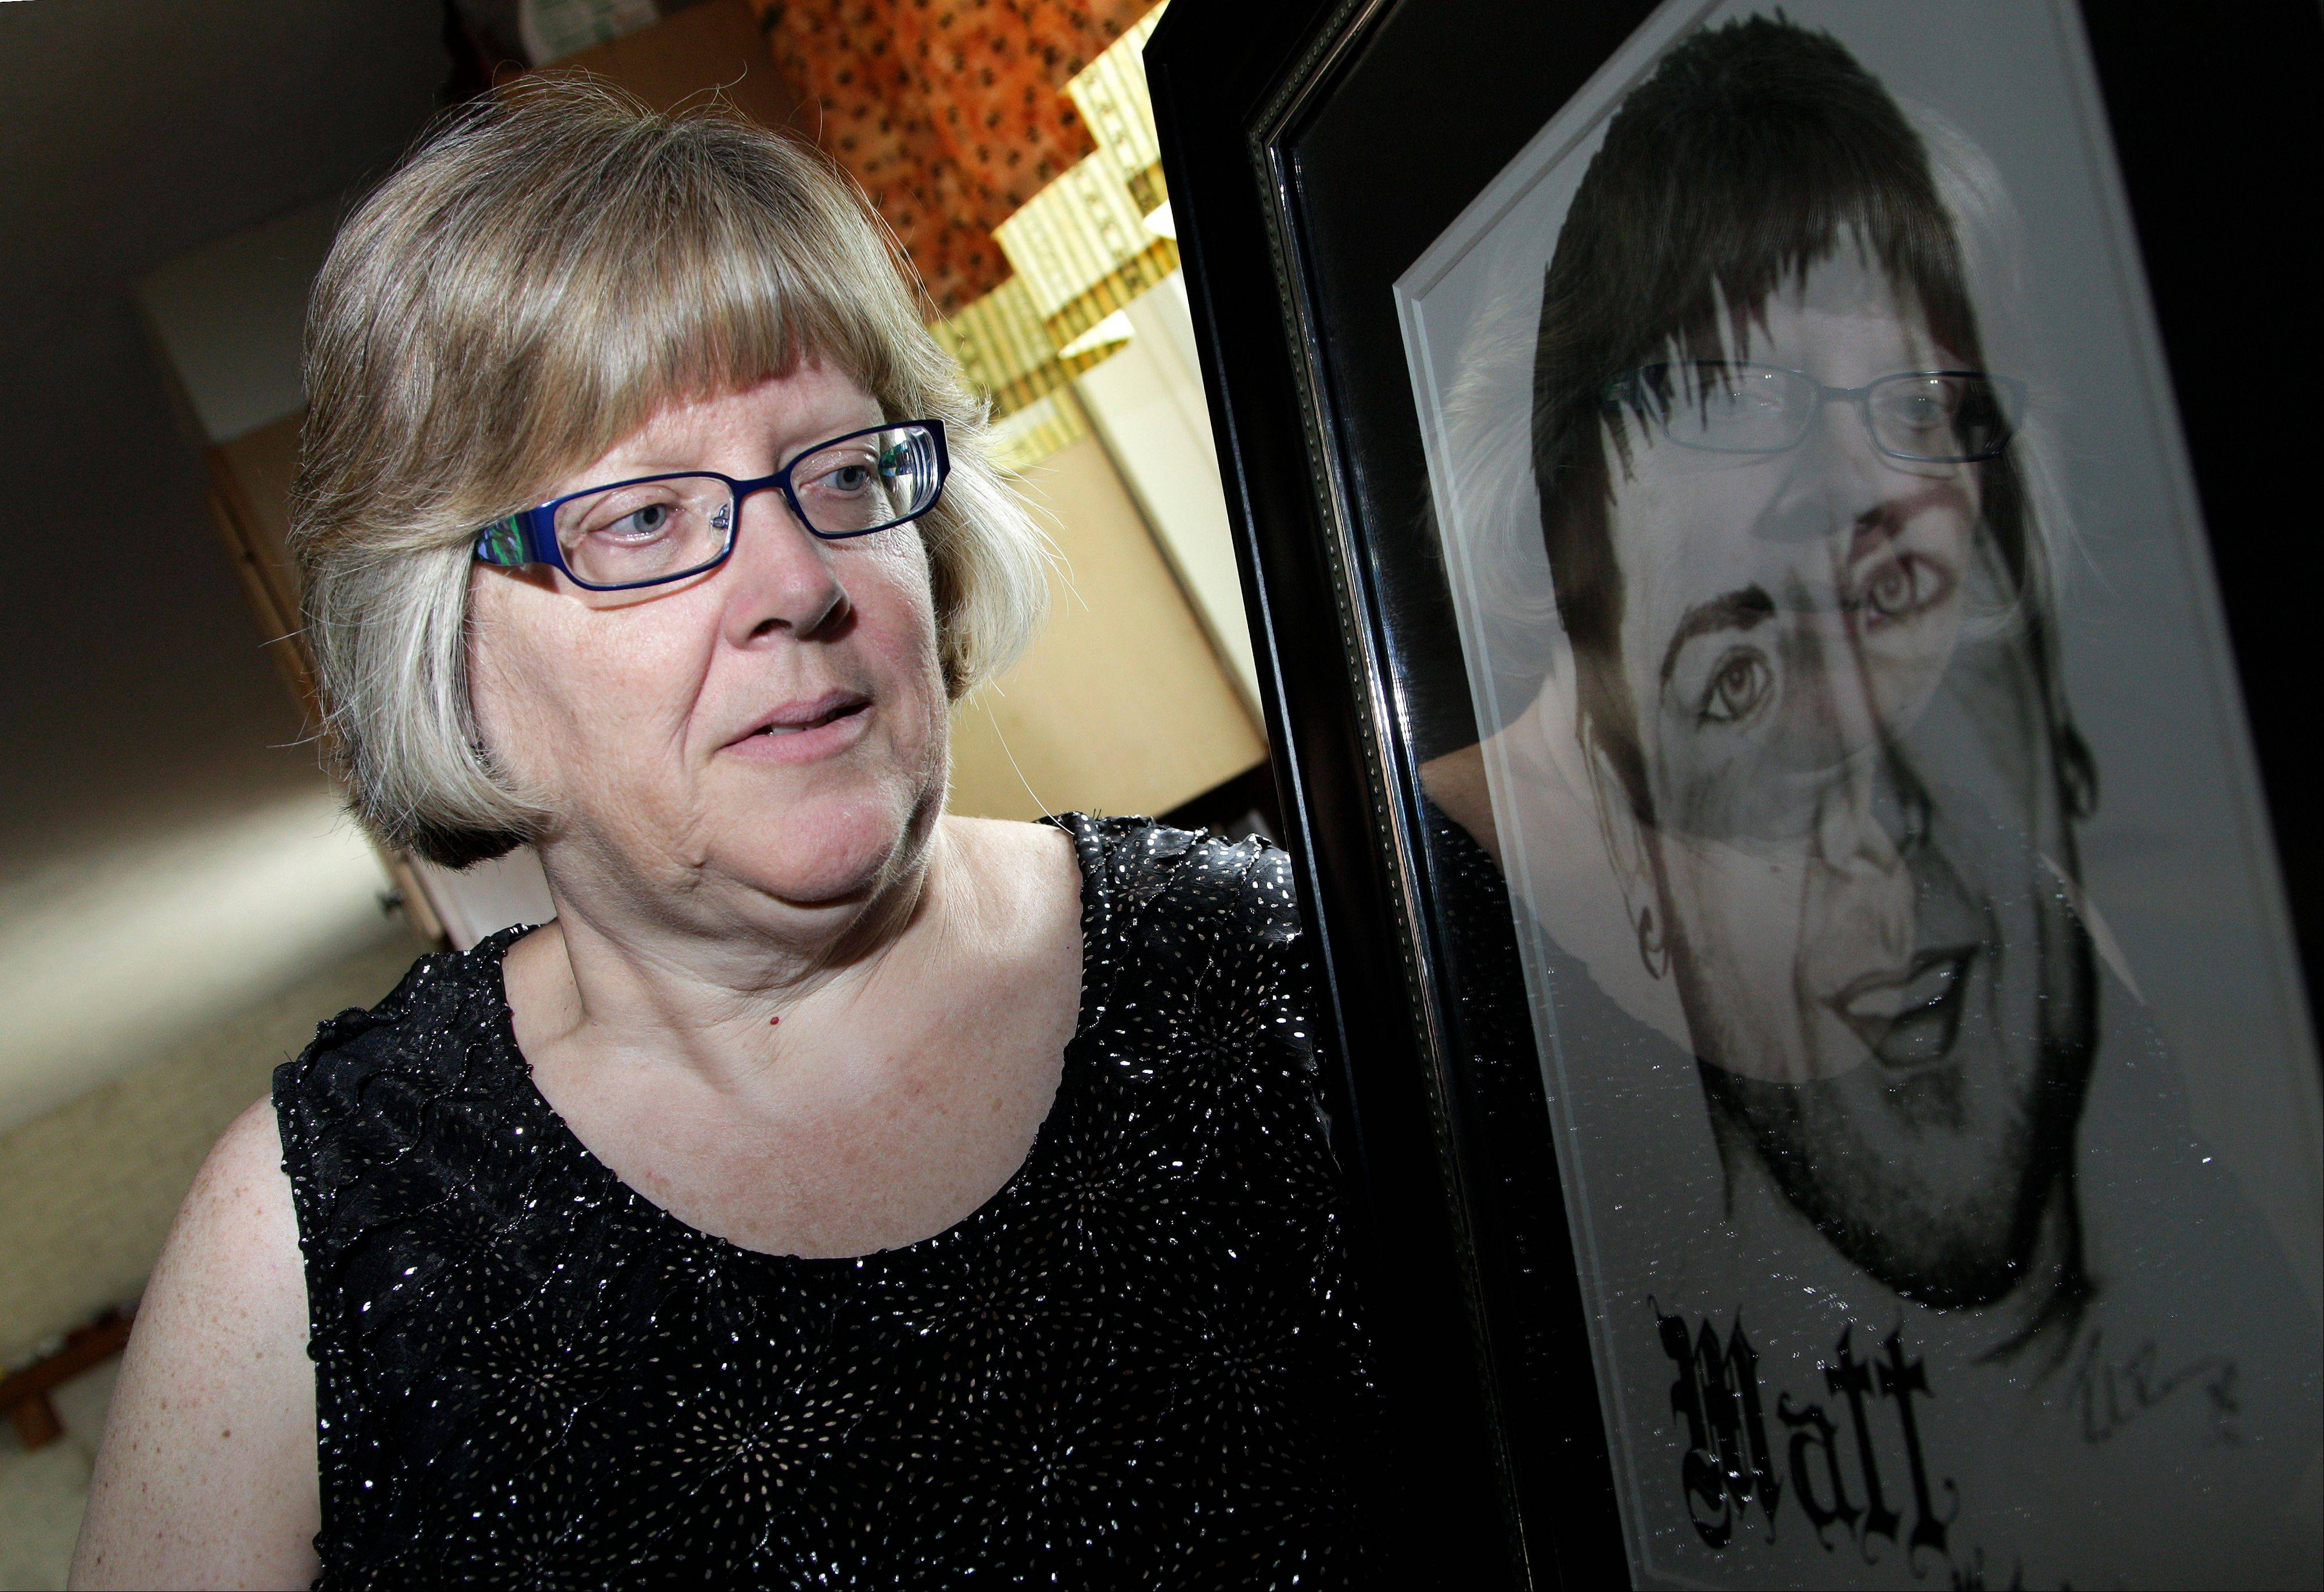 Jerri Jackson, mother of Aurora, Colo. theater shooting victim Matthew McQuinn, stands next to a sketch of her son. Jackson remembers a conversation she had with her son hours before the shooting. He talked about plans to move back to Ohio to work at a car parts factory near St. Paris; perhaps he would marry his girlfriend. Then McQuinn said he had to go. He was going to the movies.